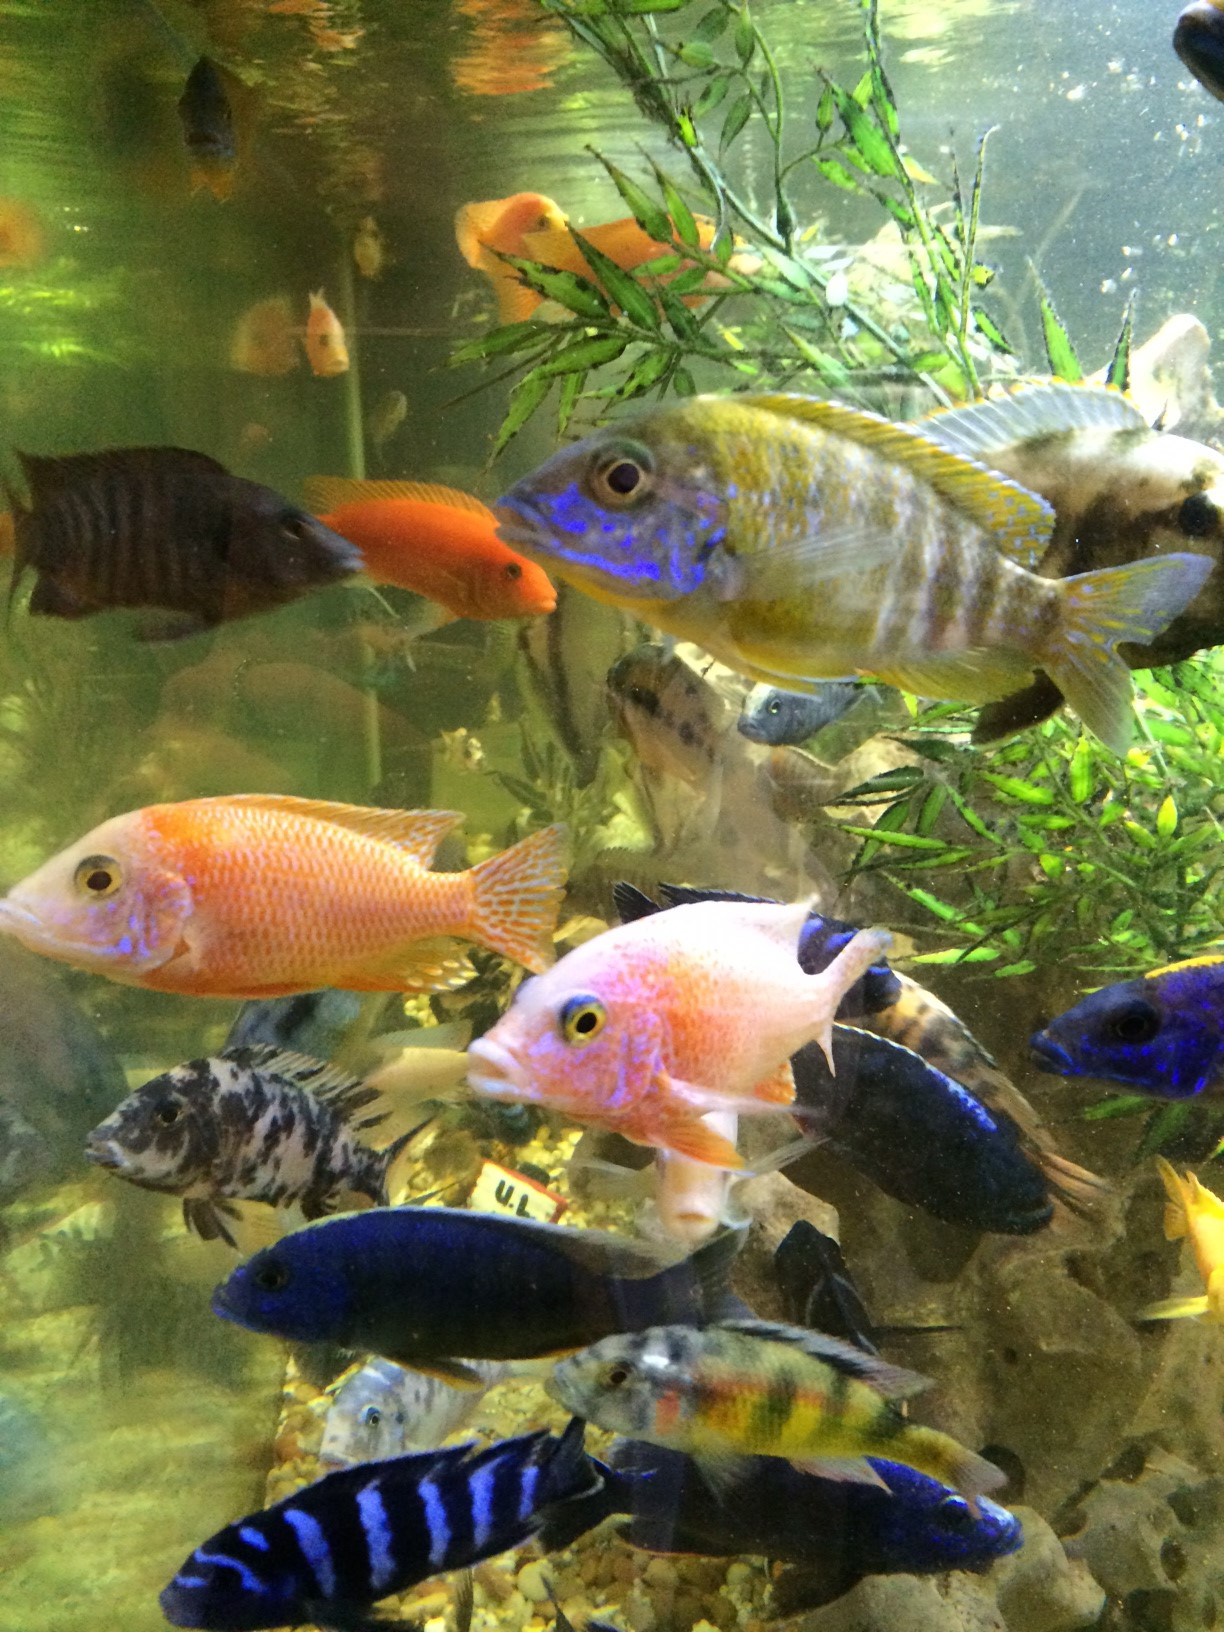 Fish tank care and maintenance louisville ky 2017 fish for Fresh water tank cleaning fish